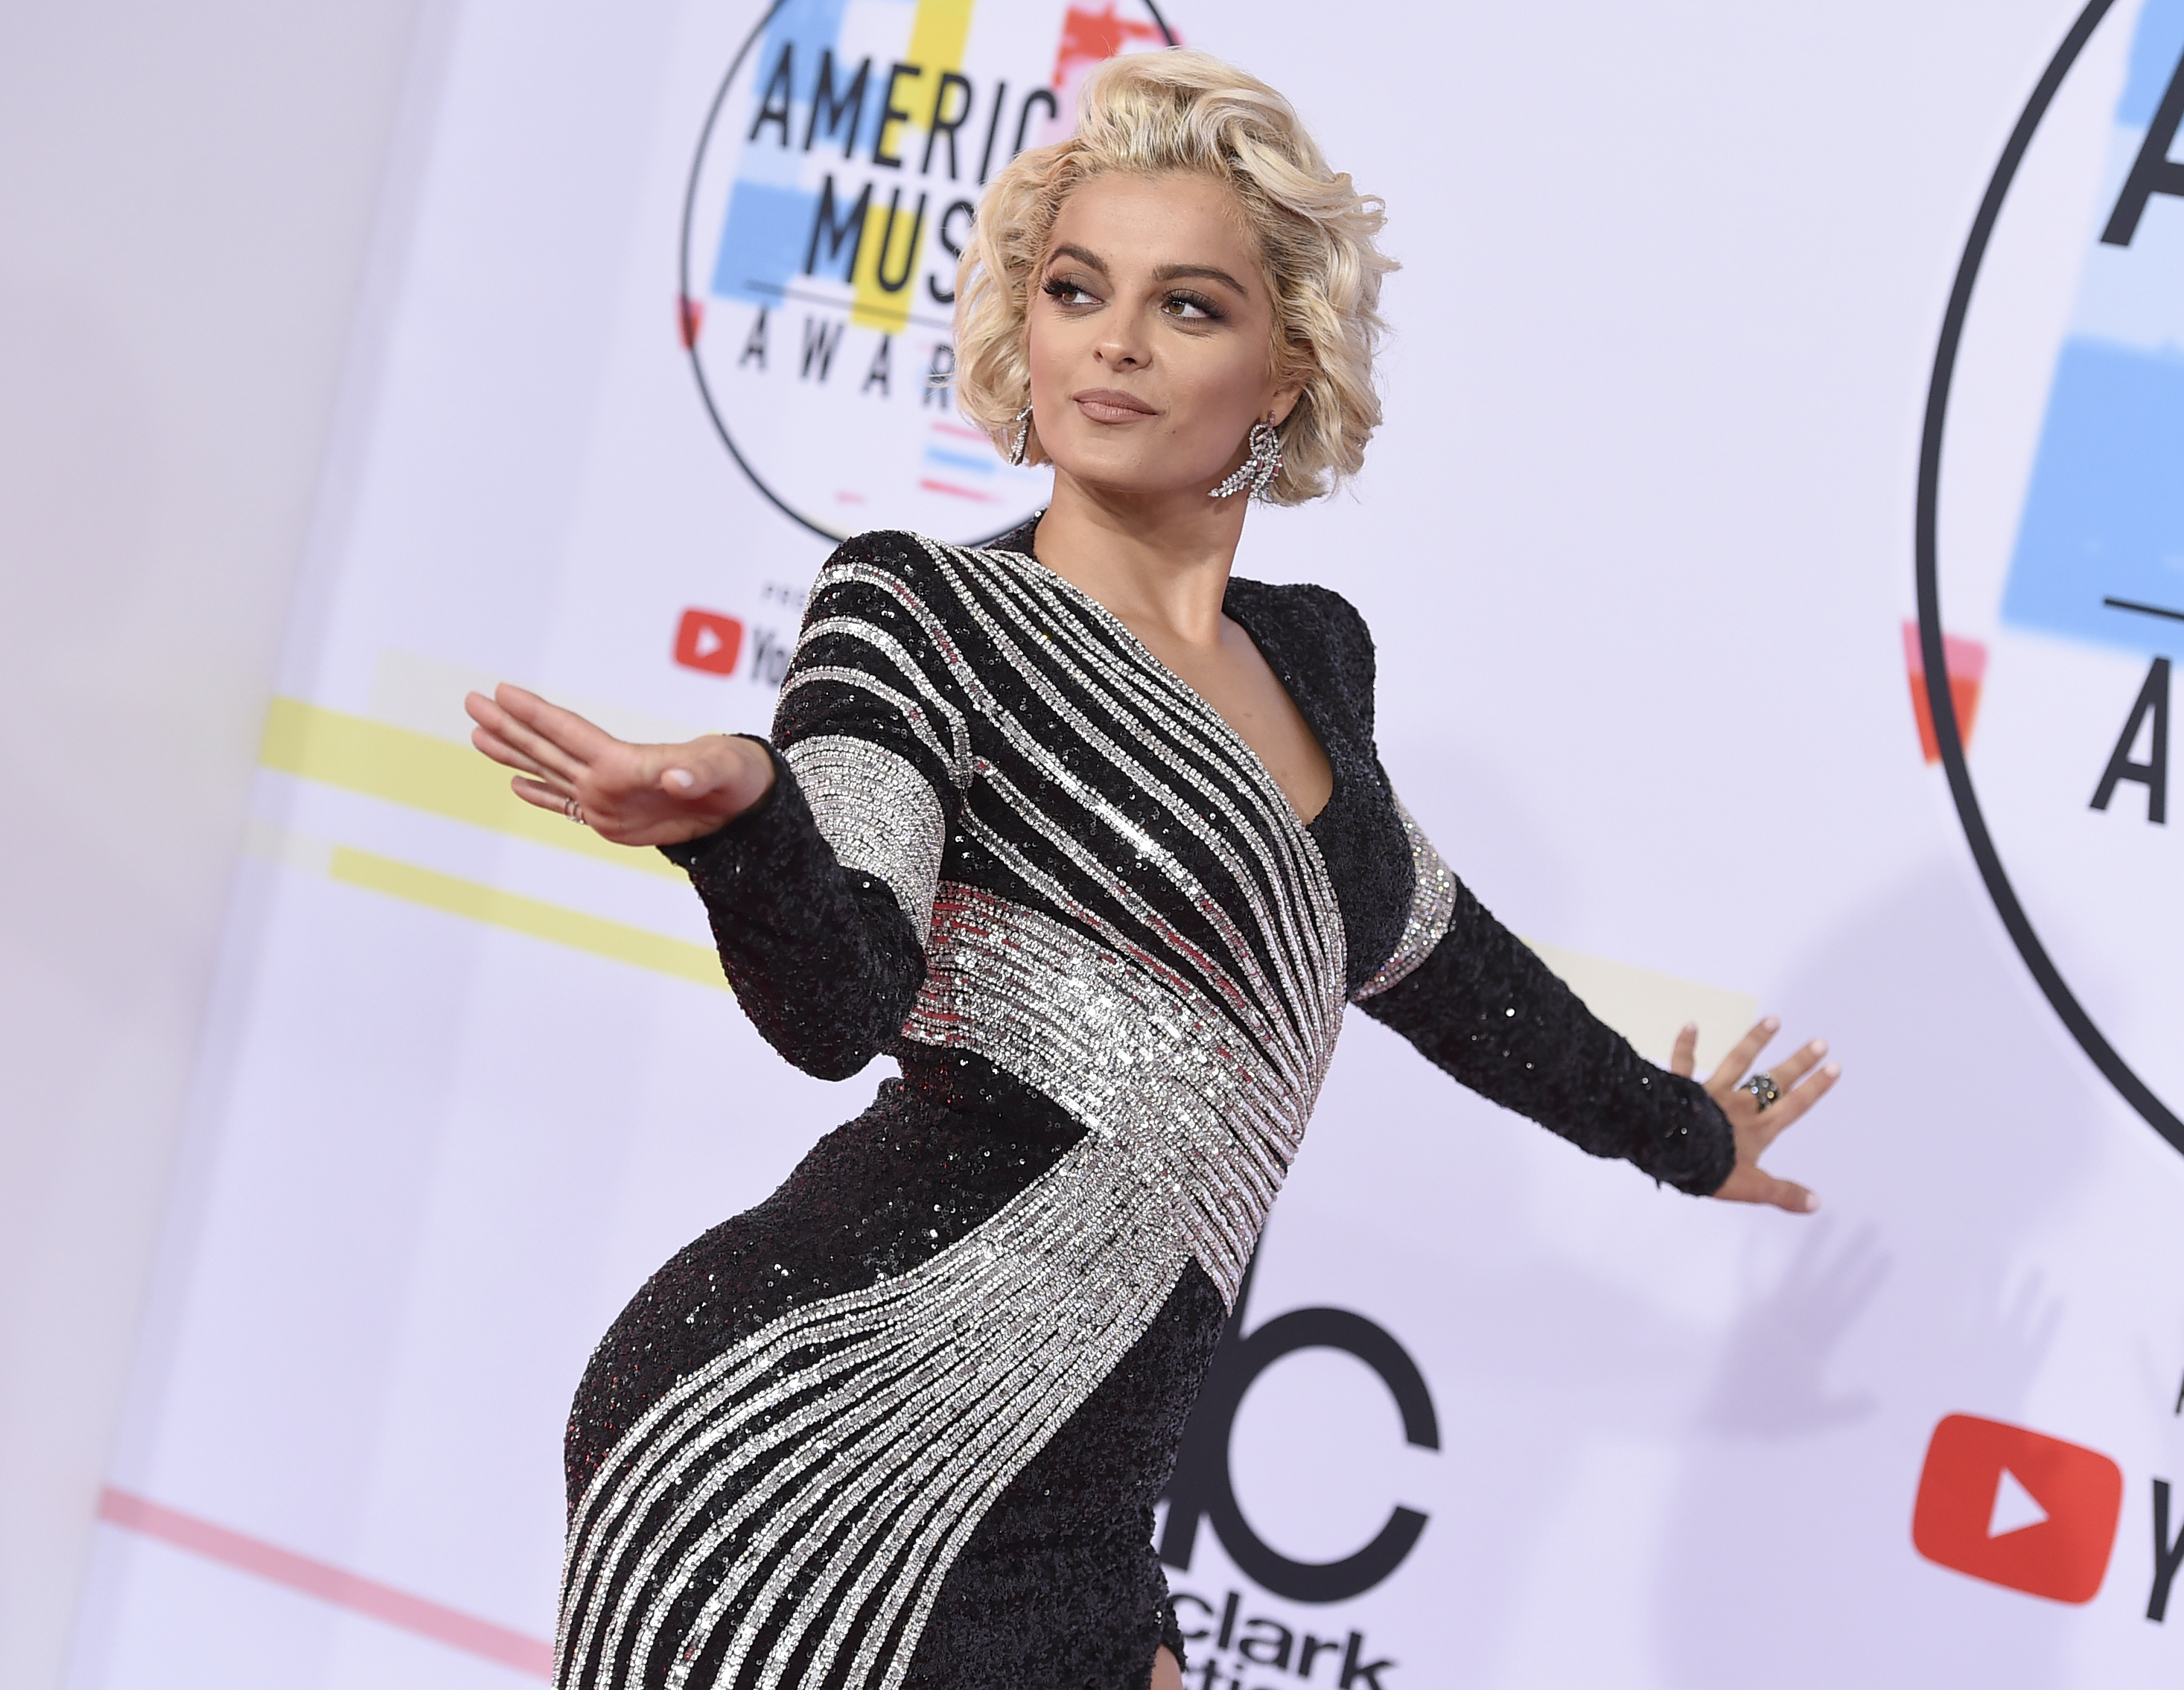 "<div class=""meta image-caption""><div class=""origin-logo origin-image none""><span>none</span></div><span class=""caption-text"">Bebe Rexha arrives at the American Music Awards on Tuesday, Oct. 9, 2018, at the Microsoft Theater in Los Angeles. (Jordan Strauss/Invision/AP)</span></div>"